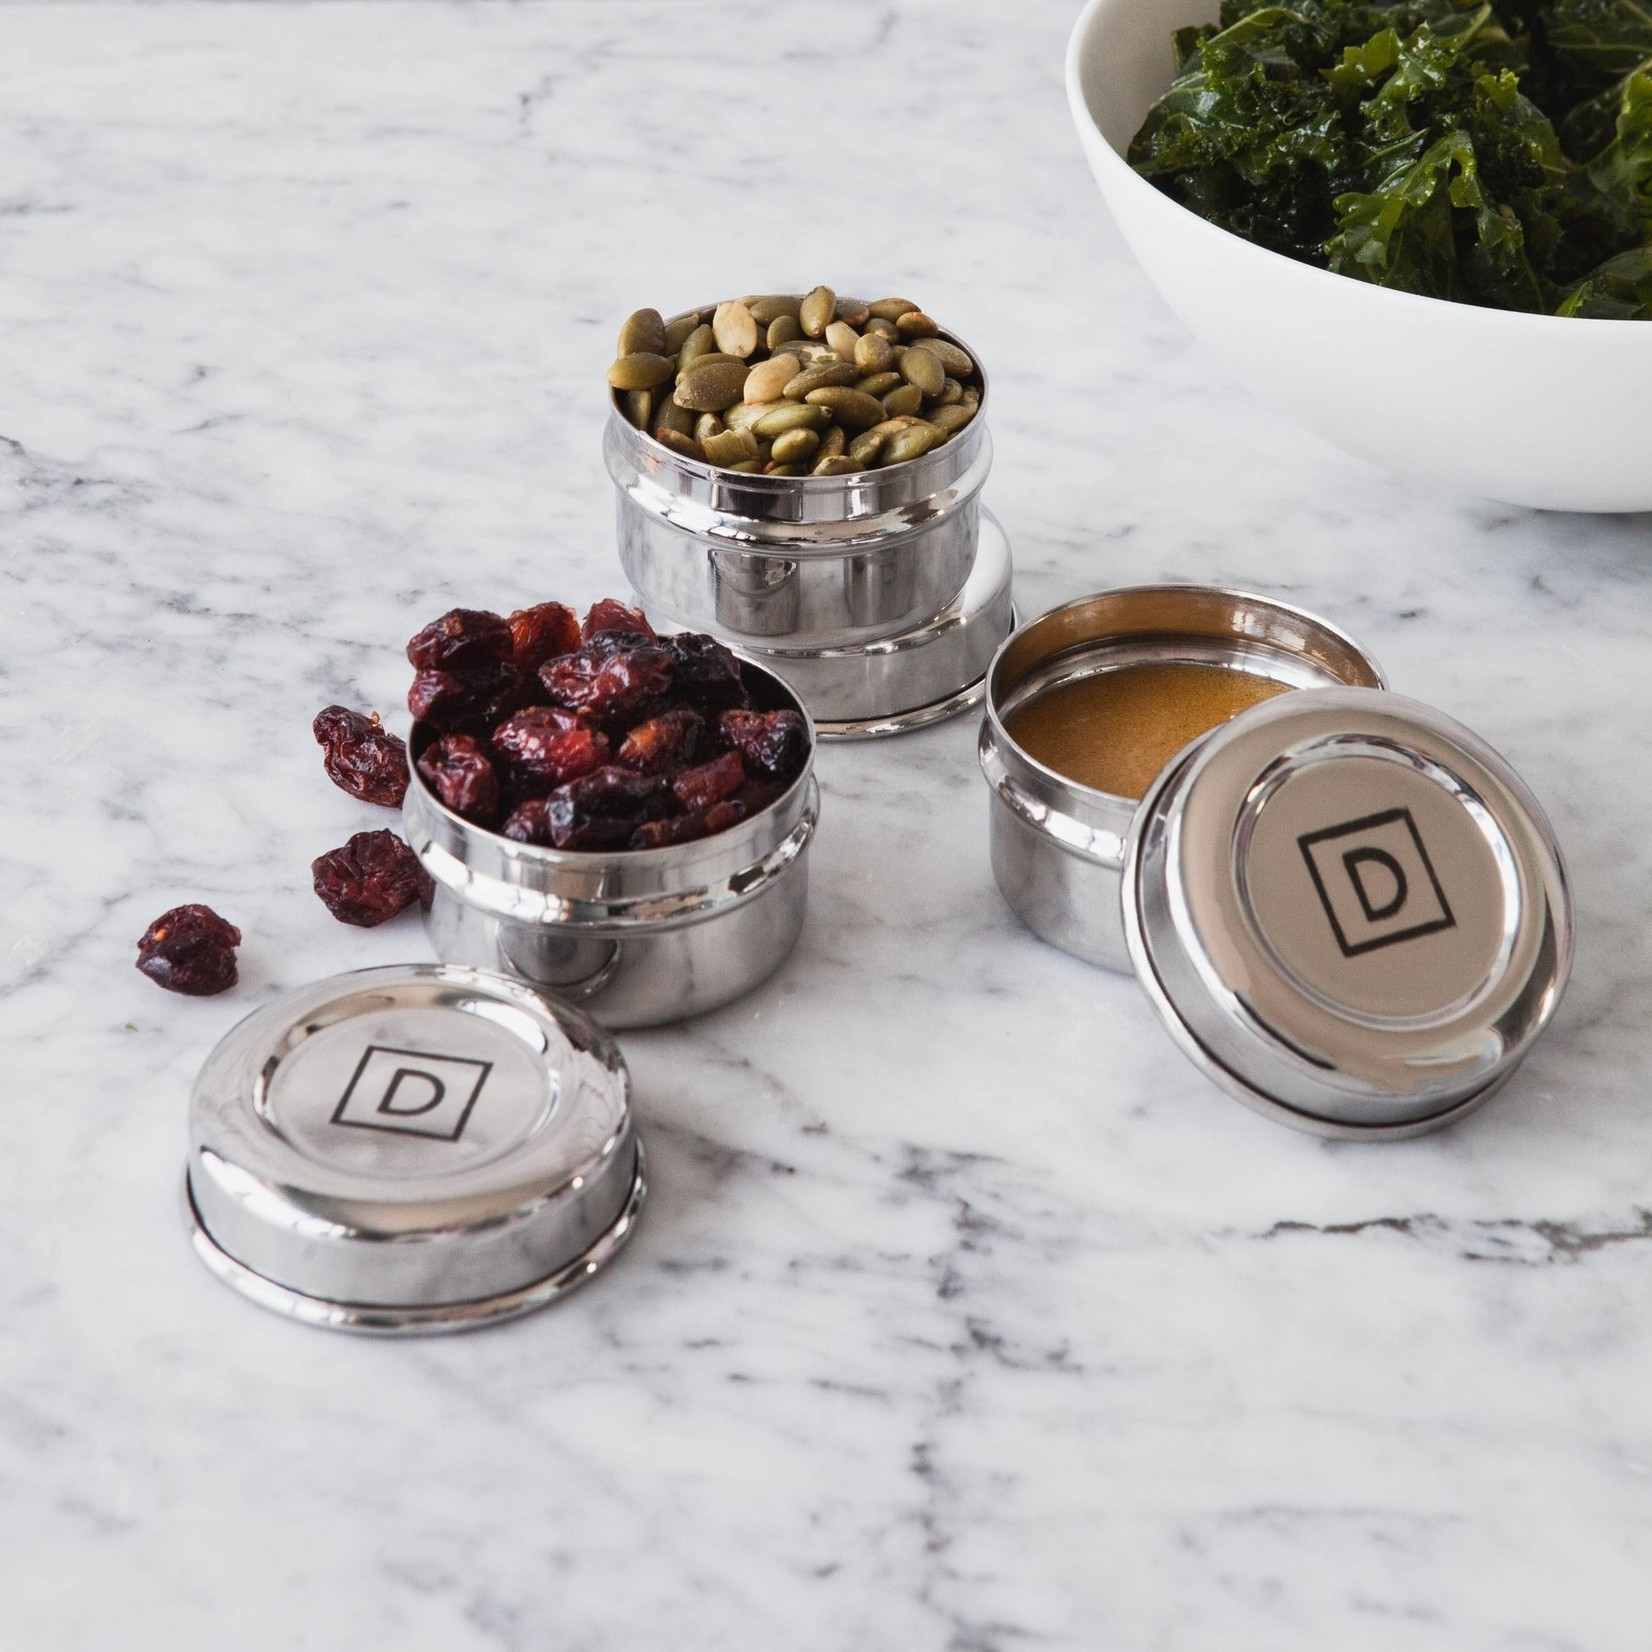 DALCINI STAINLESS CONDIMENT CONTAINER